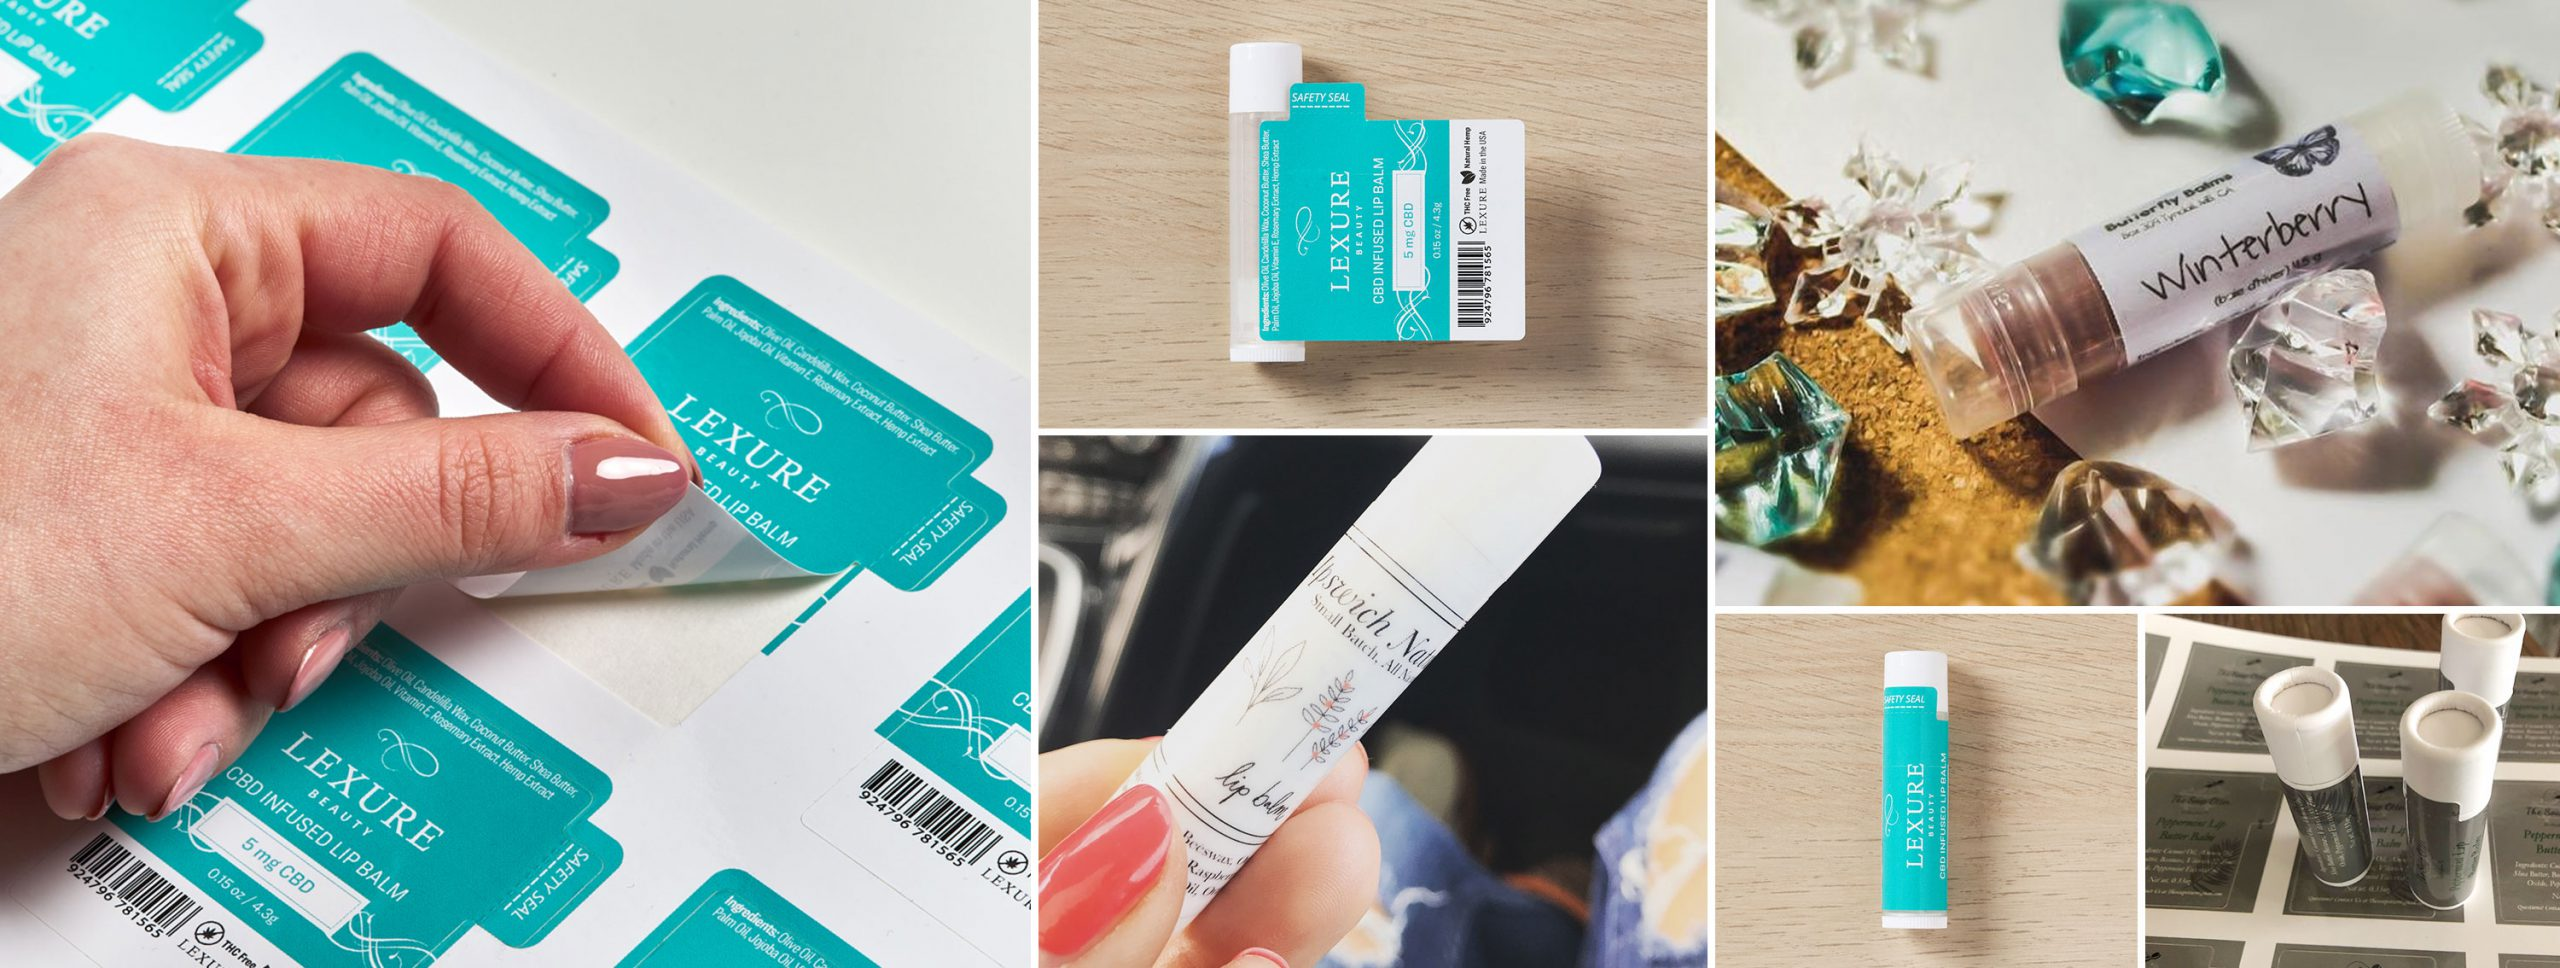 How to make, order and apply lip balm labels and lip gloss labels